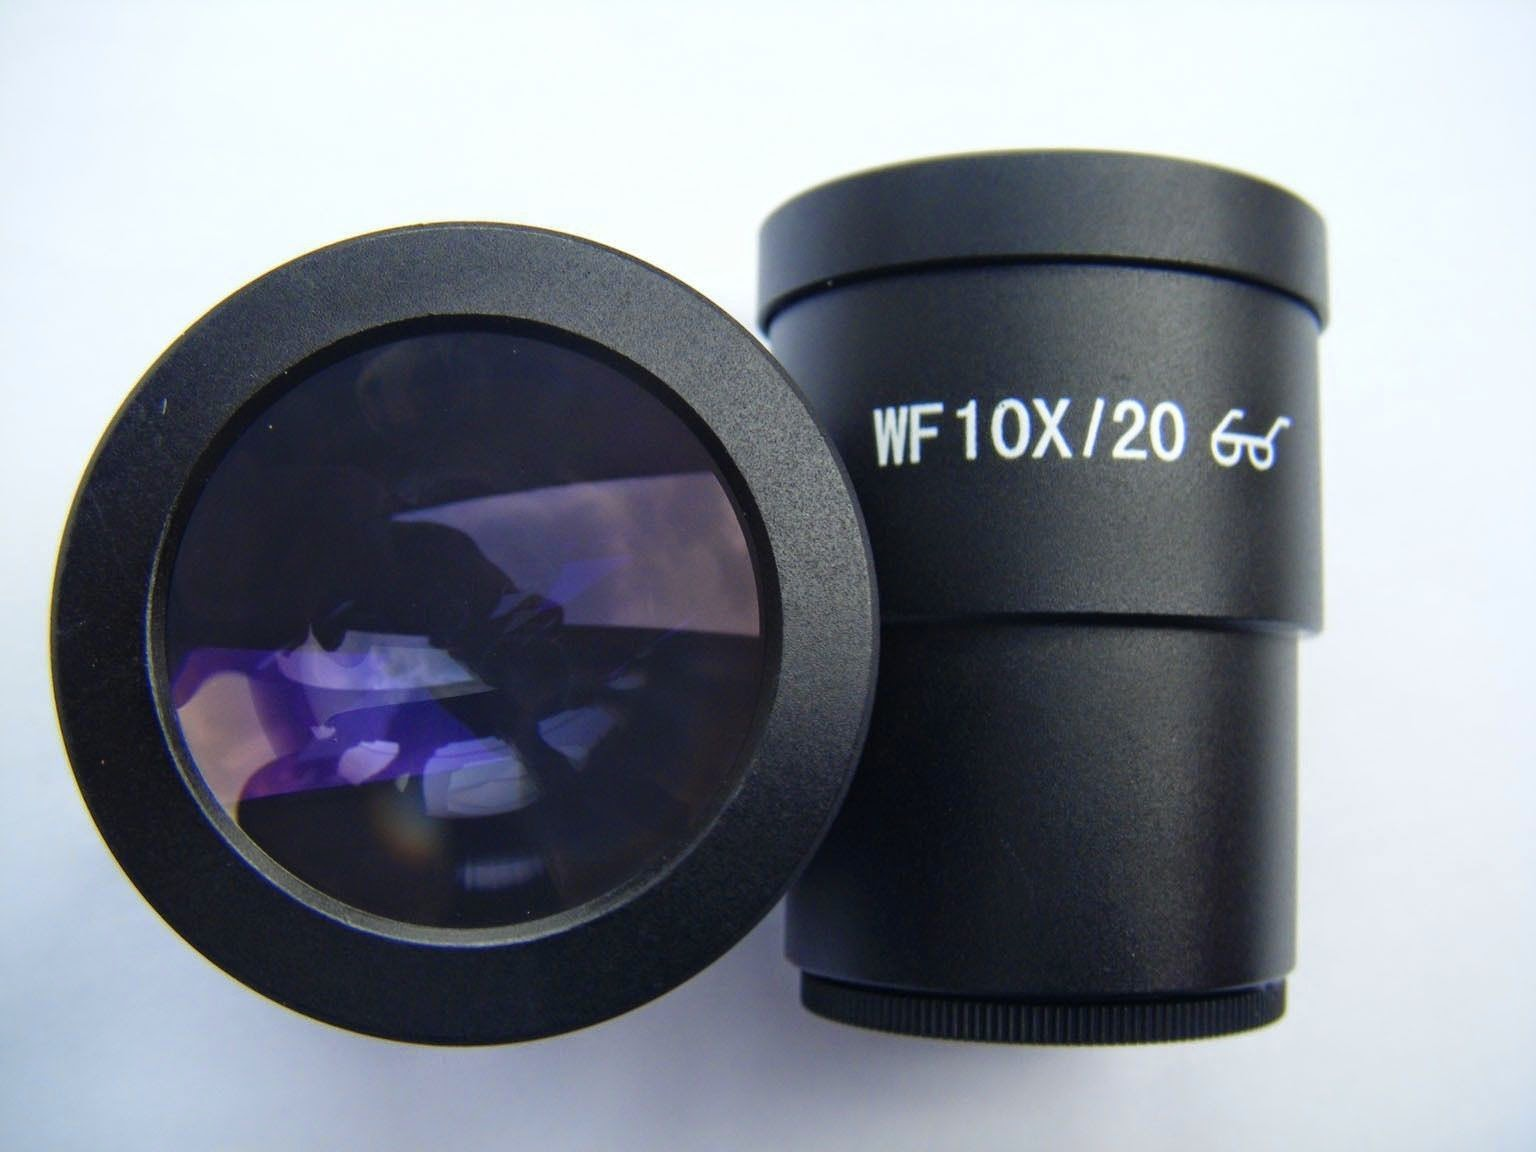 PAIR OF SUPER WIDEFIELD WF 10X/20 EYEPIECE (30MM) FOR STEREO MICROSCOPE